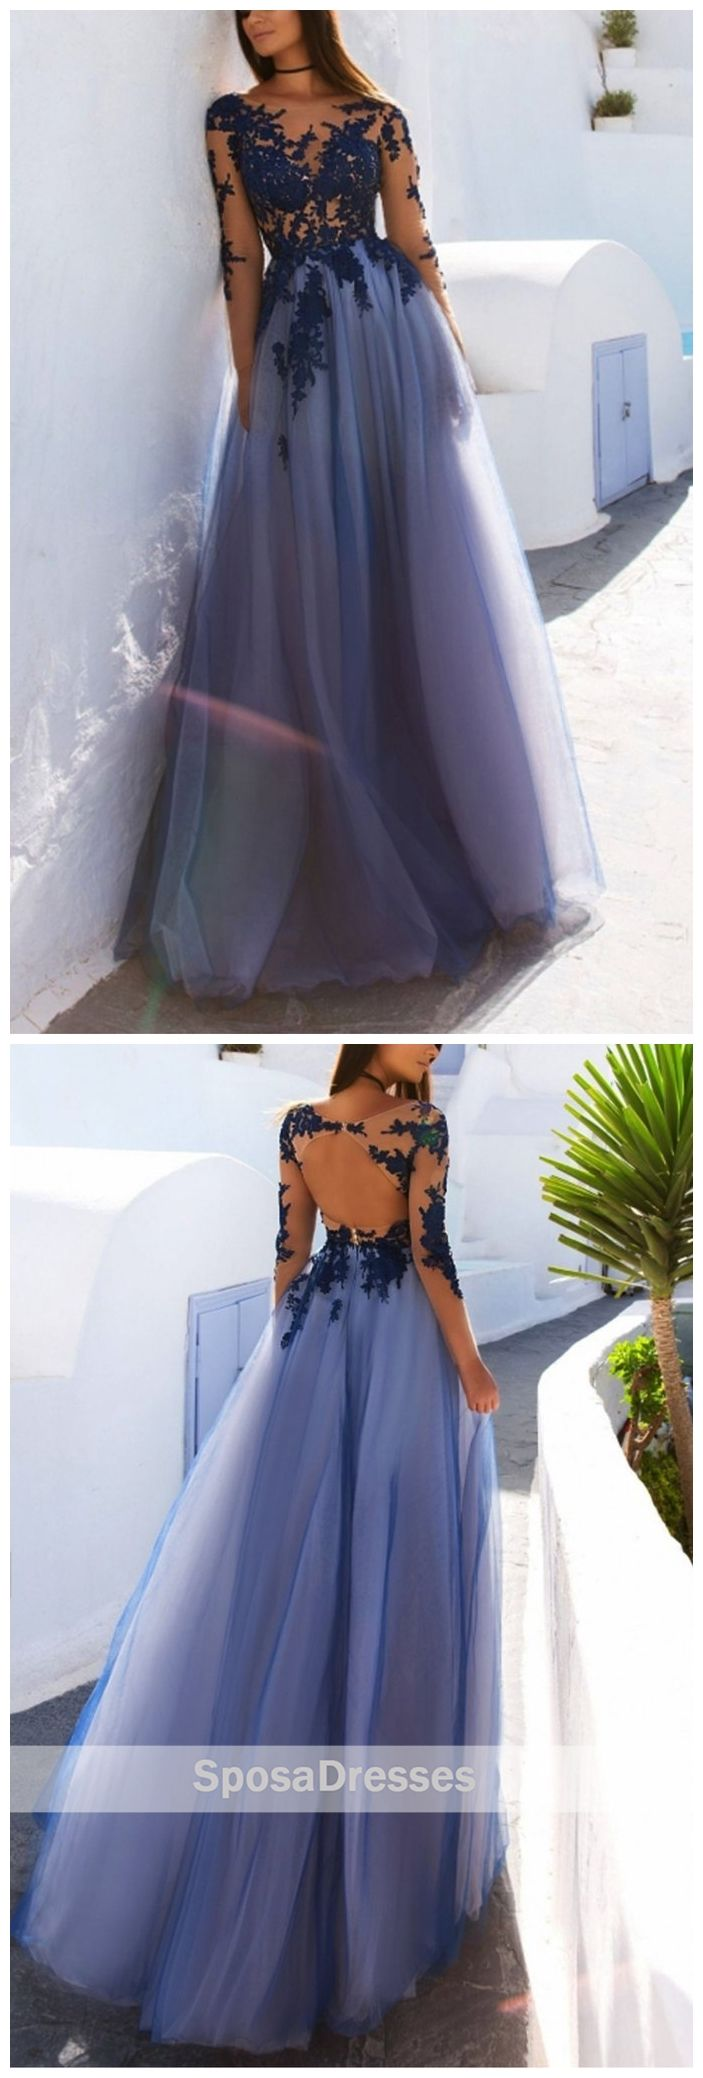 Sexy see through blue lace long sleeve open back custom long evening